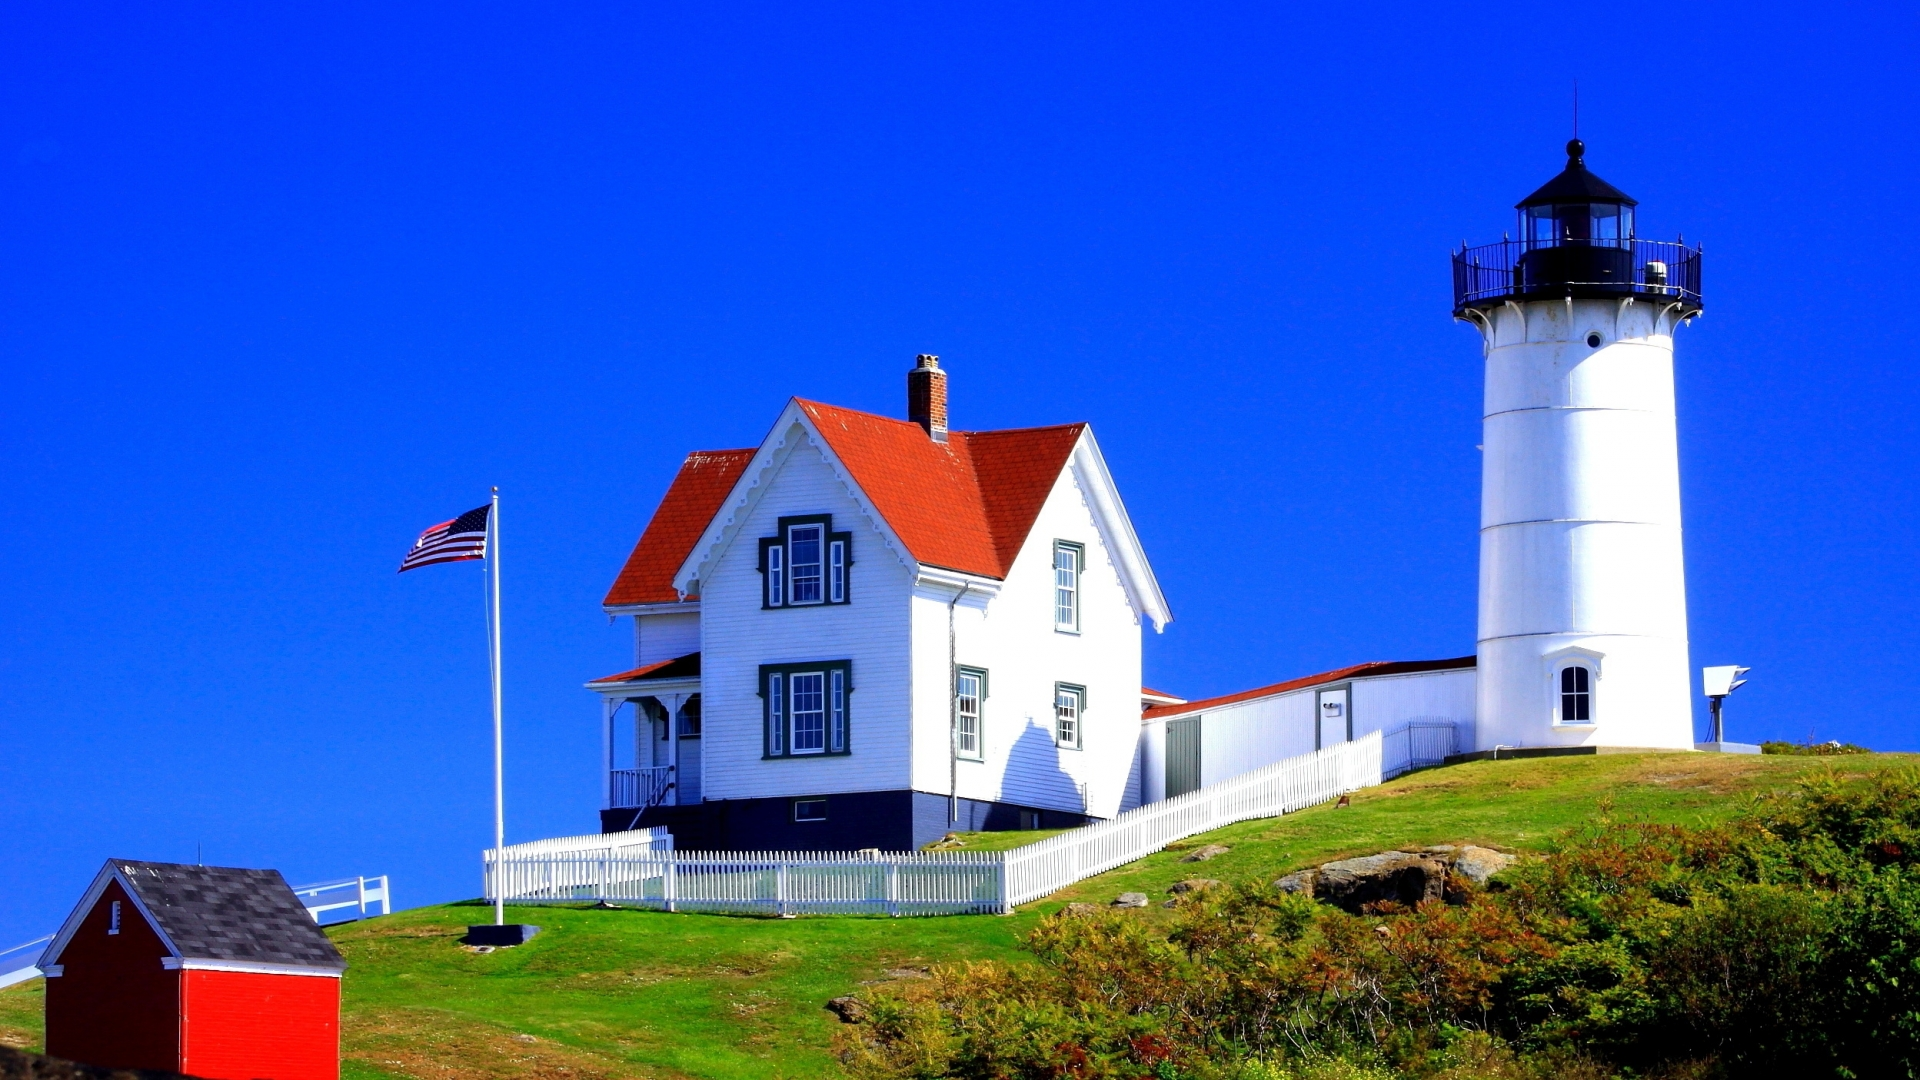 blue-sky-over-american-lighthouse-1920%C3%971080-wallpaper-wp3603553